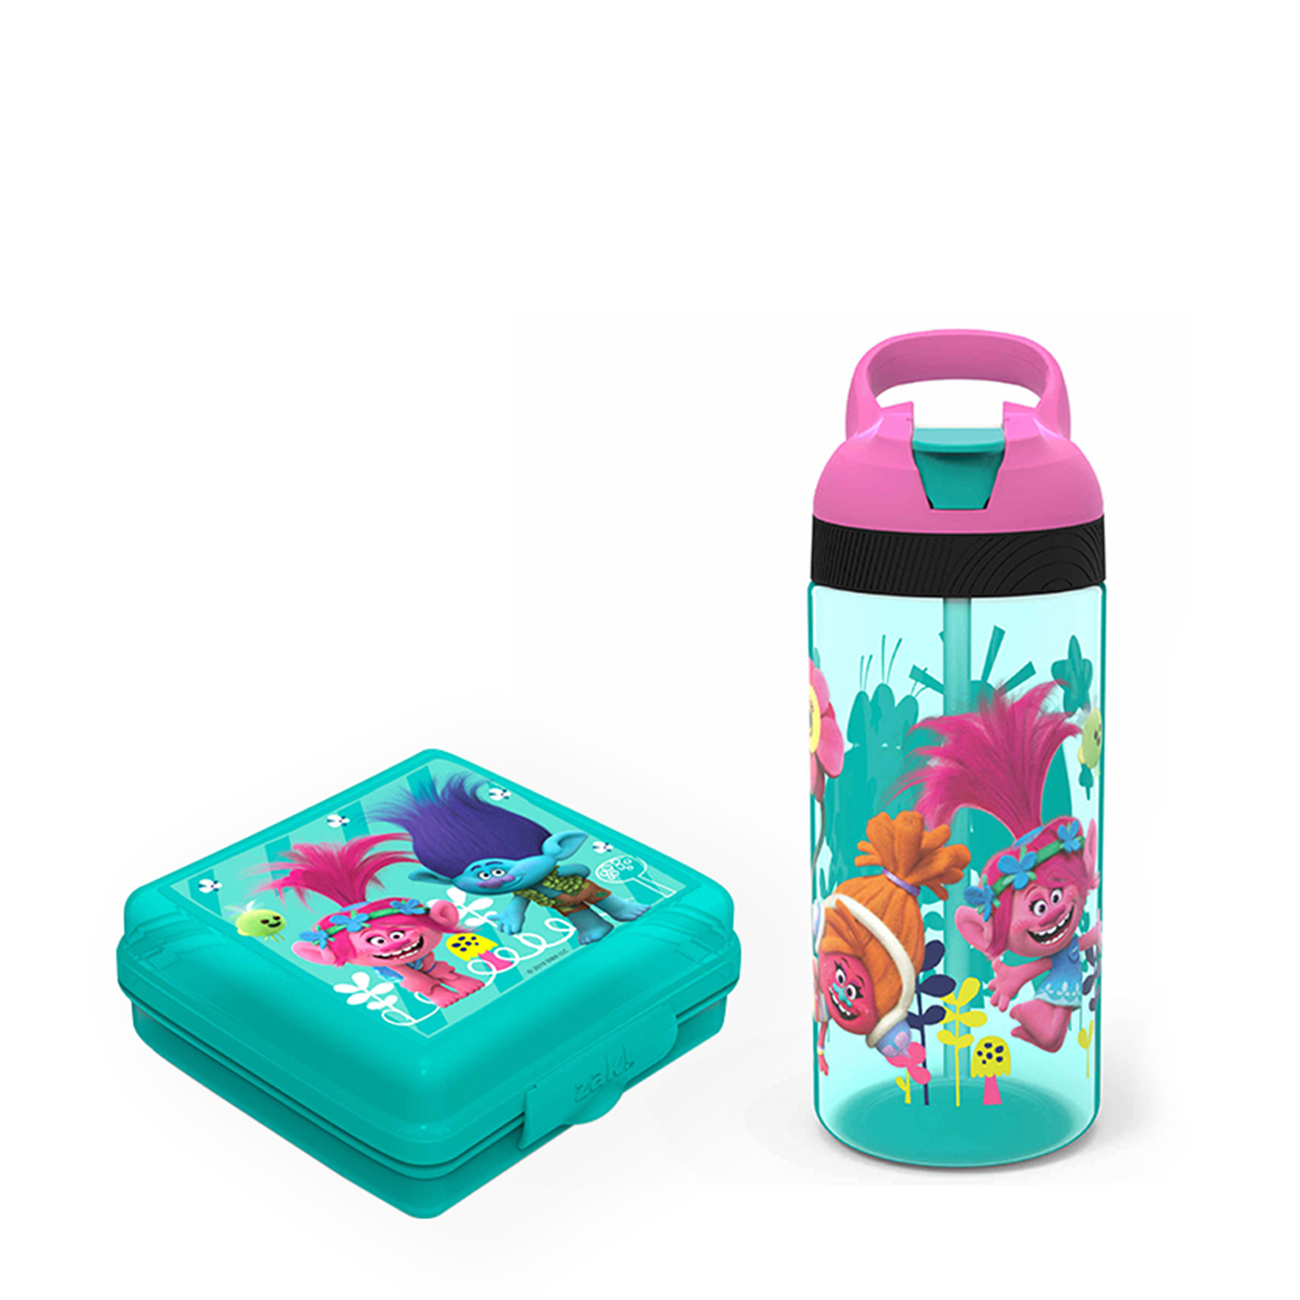 Trolls Movie Kid's Water Bottle and Sandwich Container Lunch Set, Poppy and Friends, 2-piece set slideshow image 2